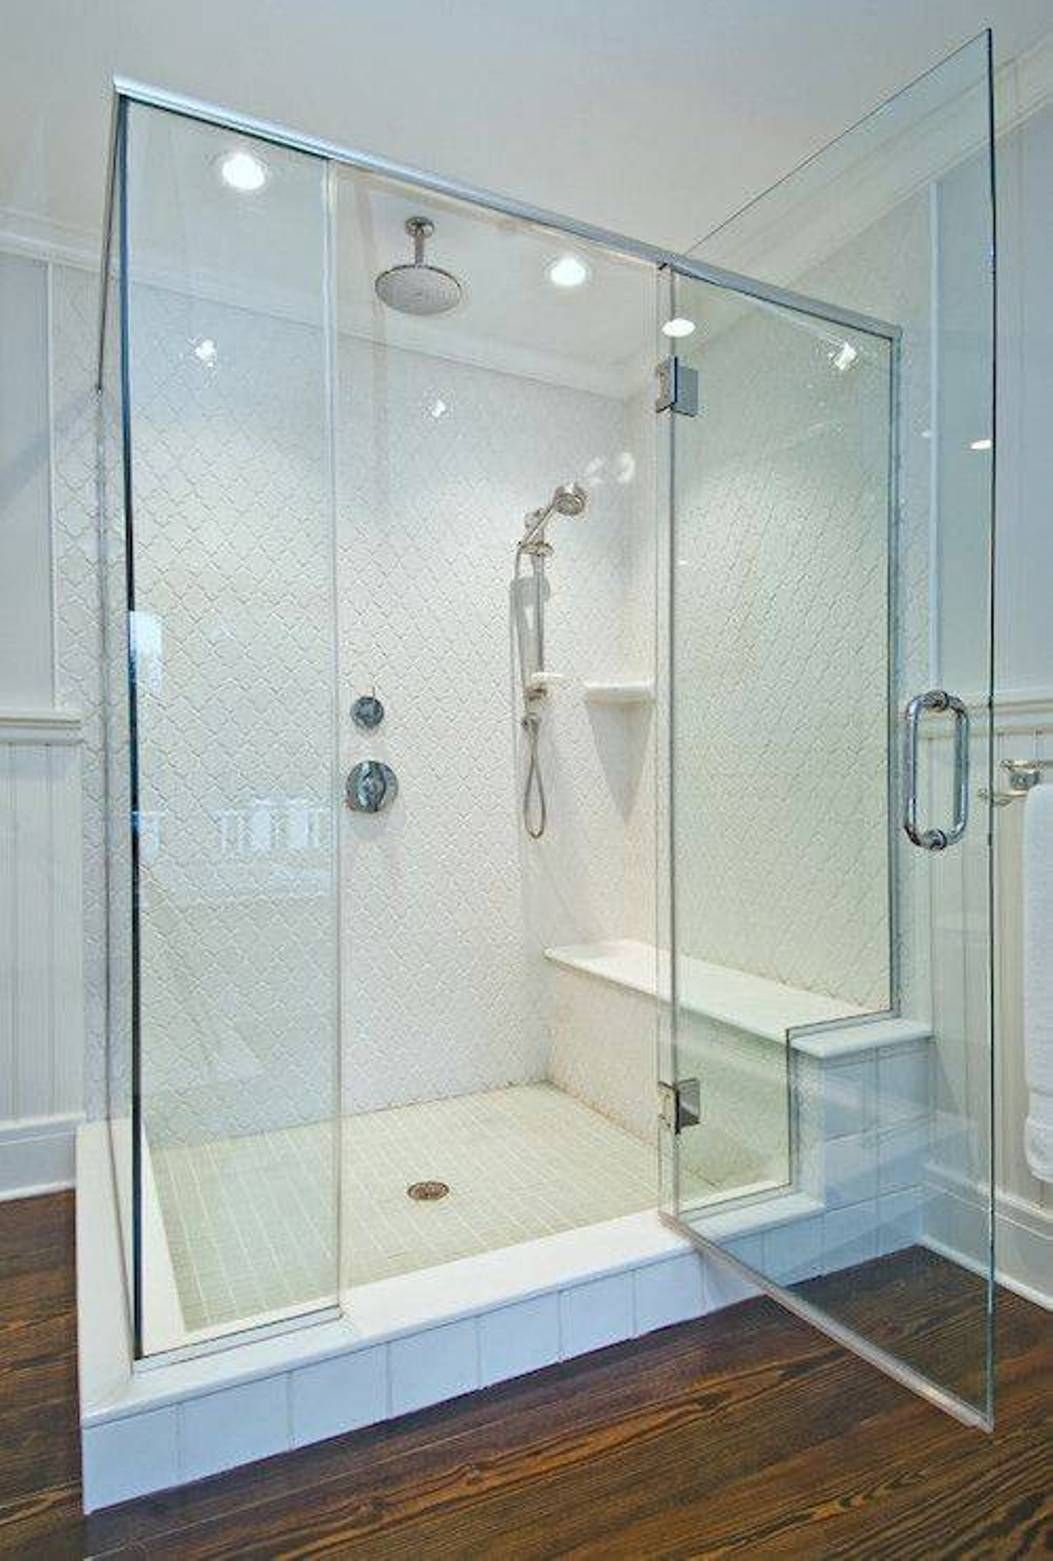 walk in shower w/ glass doors and seats | Walk In Shower ...